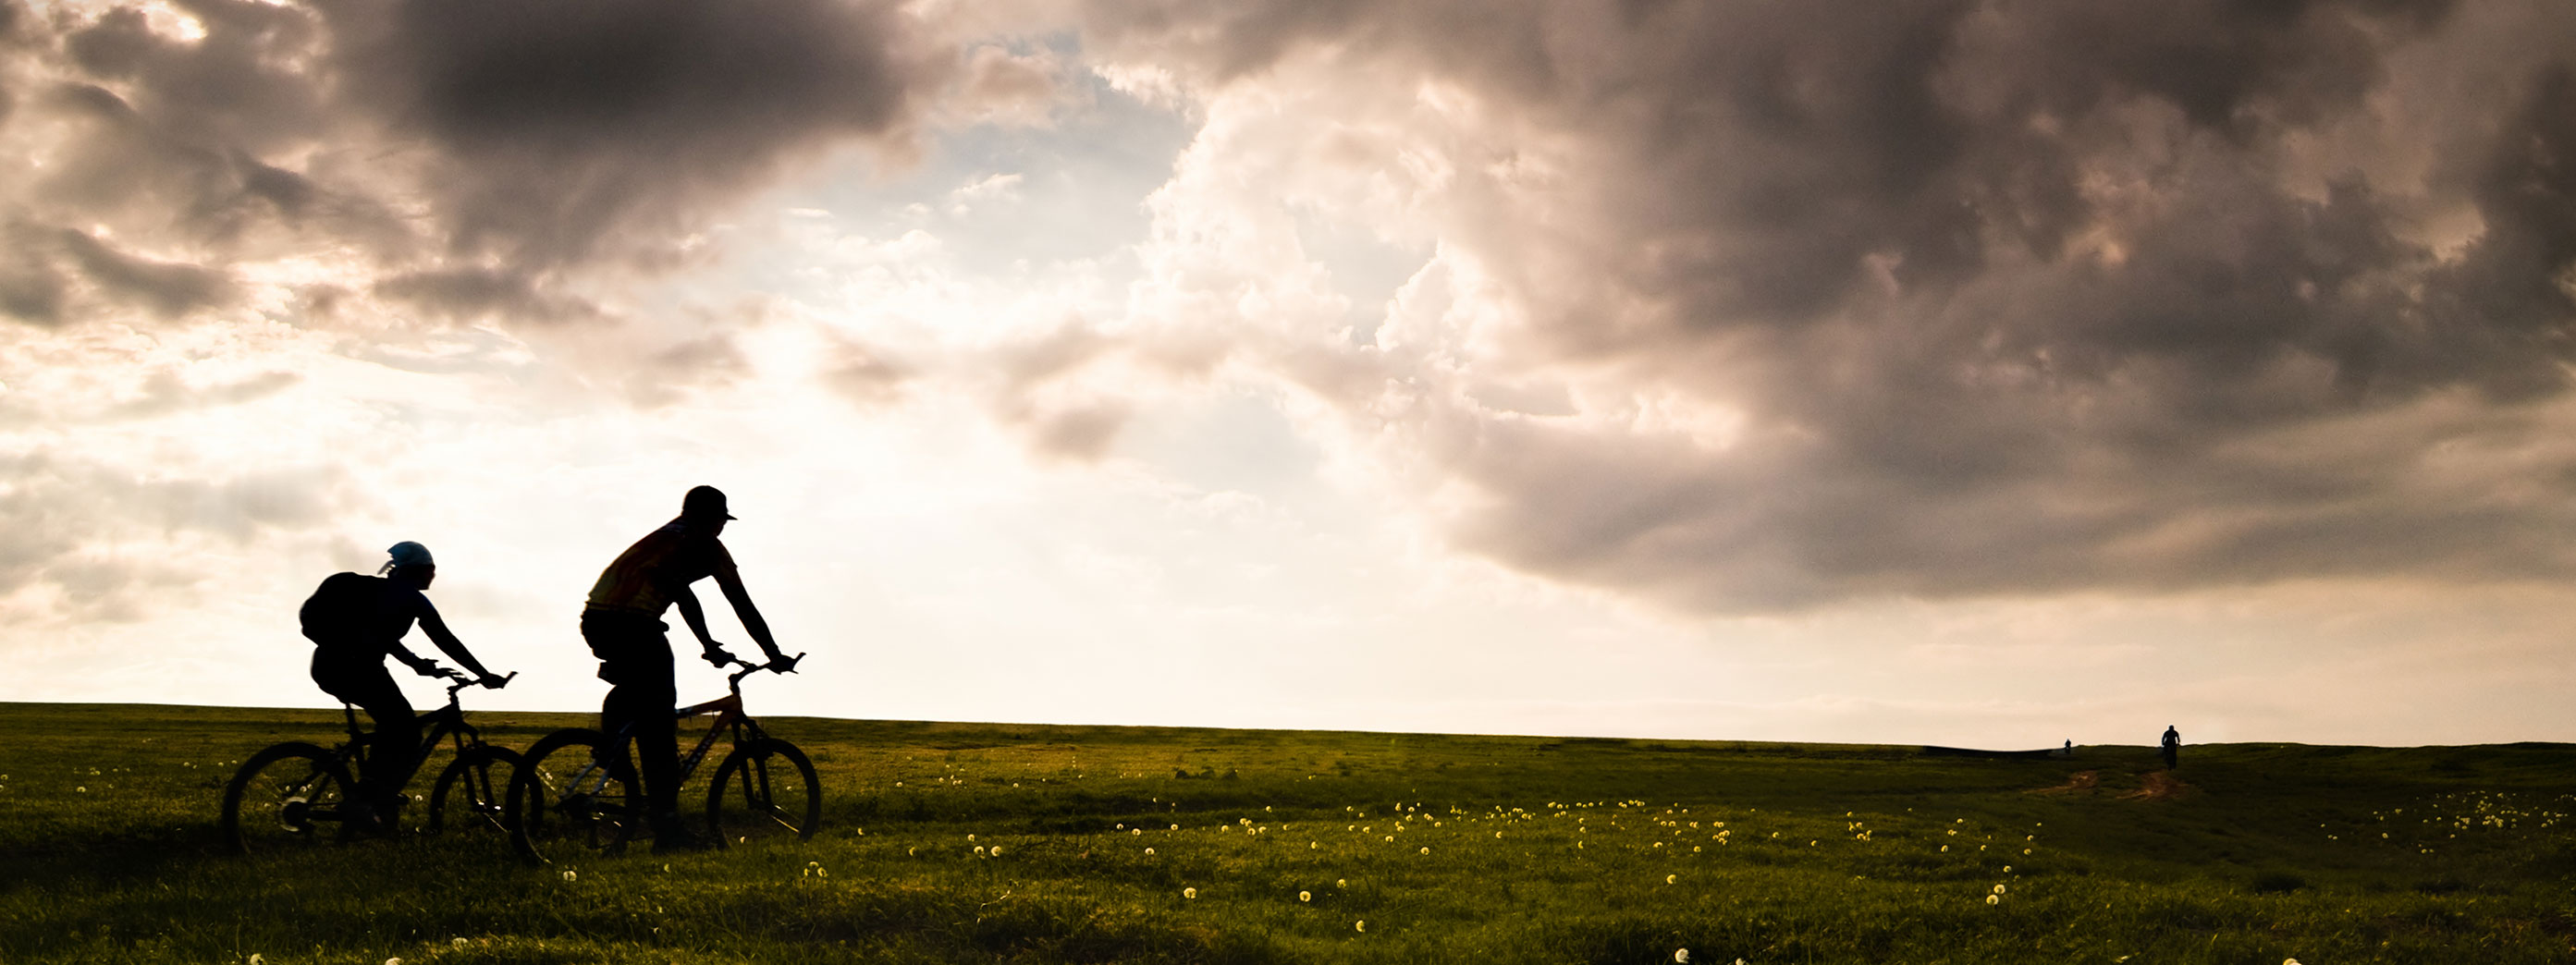 Two people riding bikes in a field